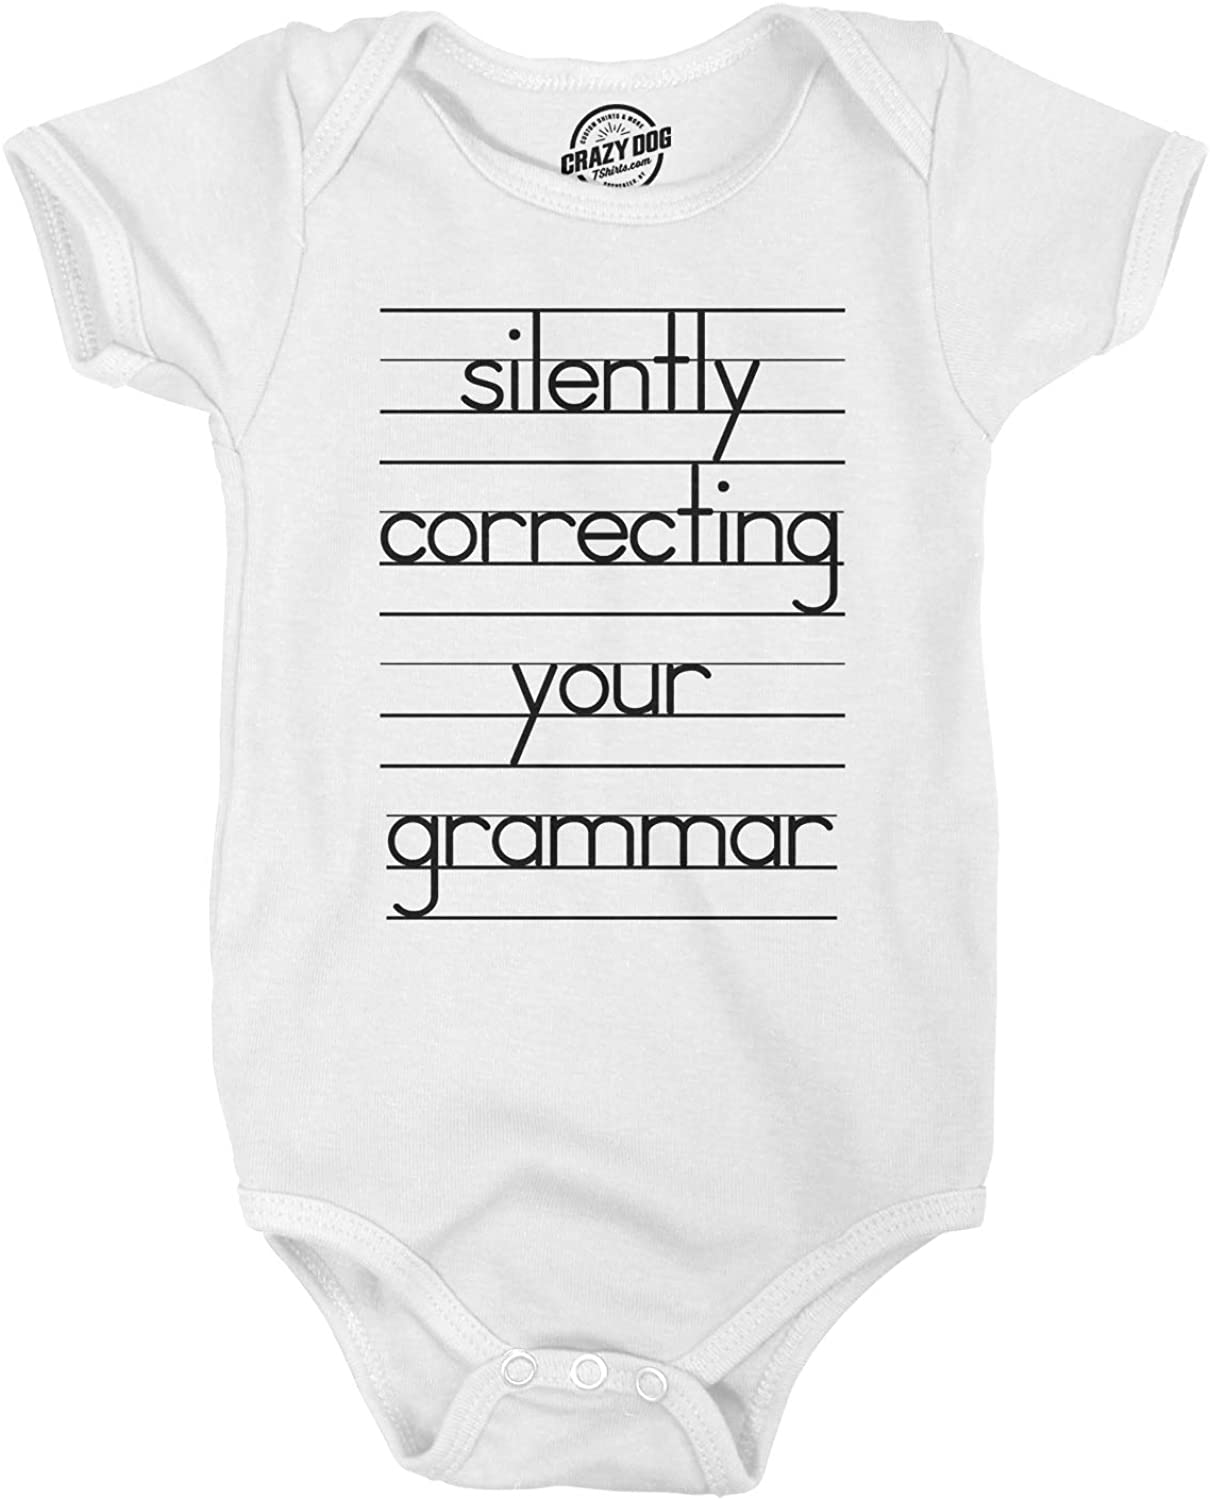 Crazy Dog T-Shirts Baby Silently Correcting Your Grammar Funny Lined Paper Creeper Bodysuit